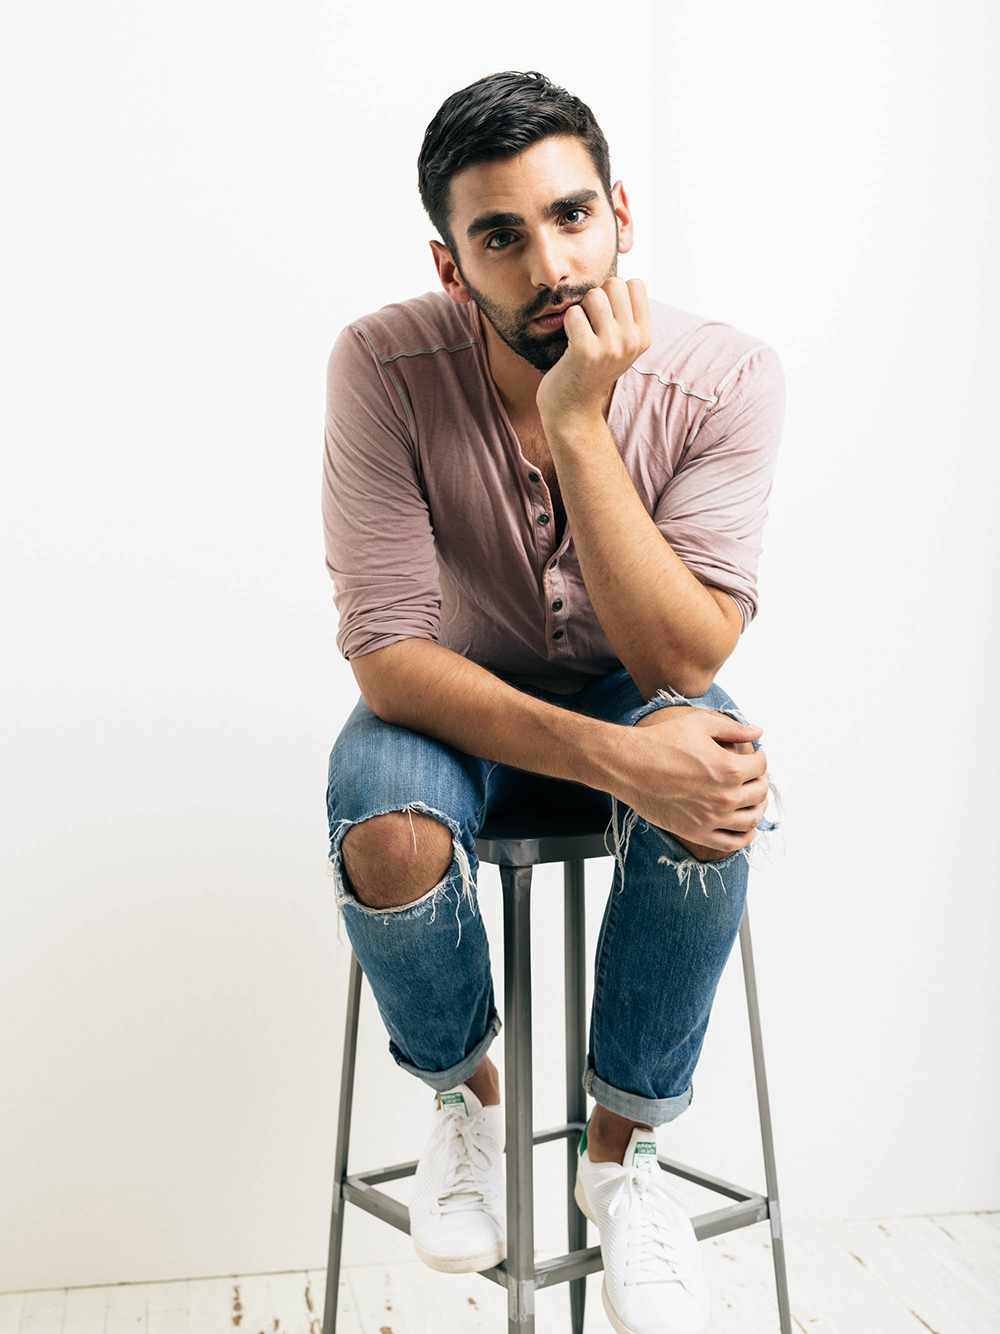 Teen Vogue's Phillip Picardi represents Fashion's Prince Charming